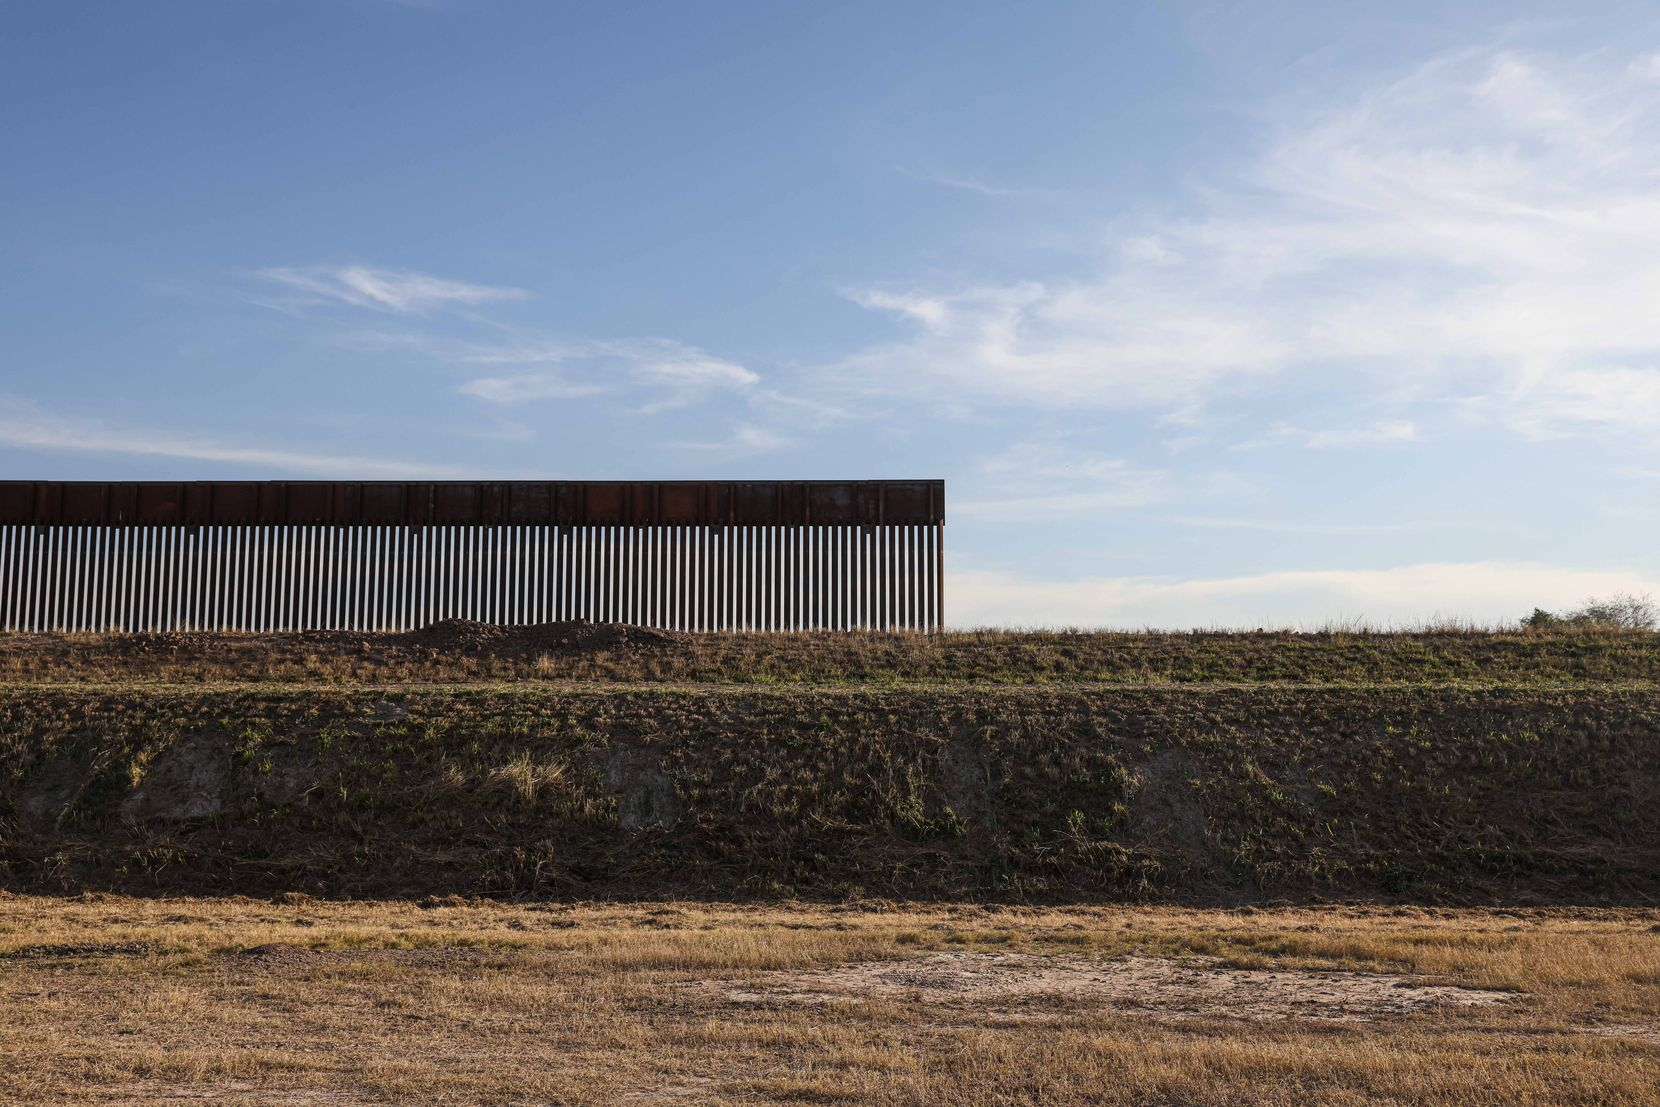 New section of the wall on the border with Mexico continues in contruction under the administration of President Donald Trump in Pharr, Texas on Wednesday, January 13, 2021.